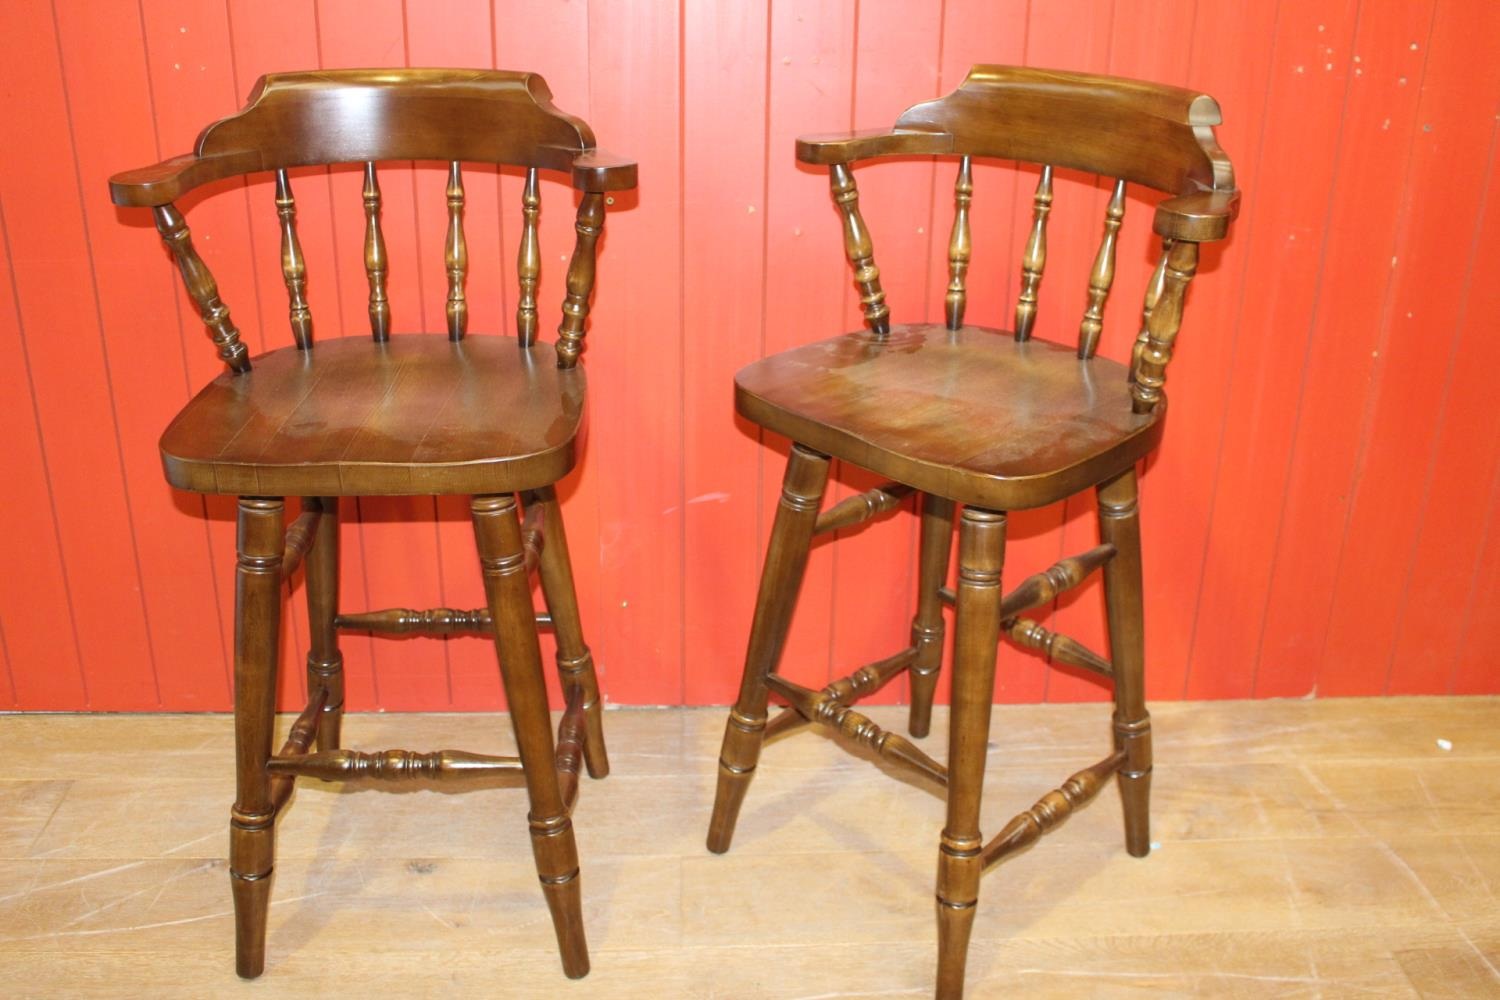 Pair of high smoker's bow stools